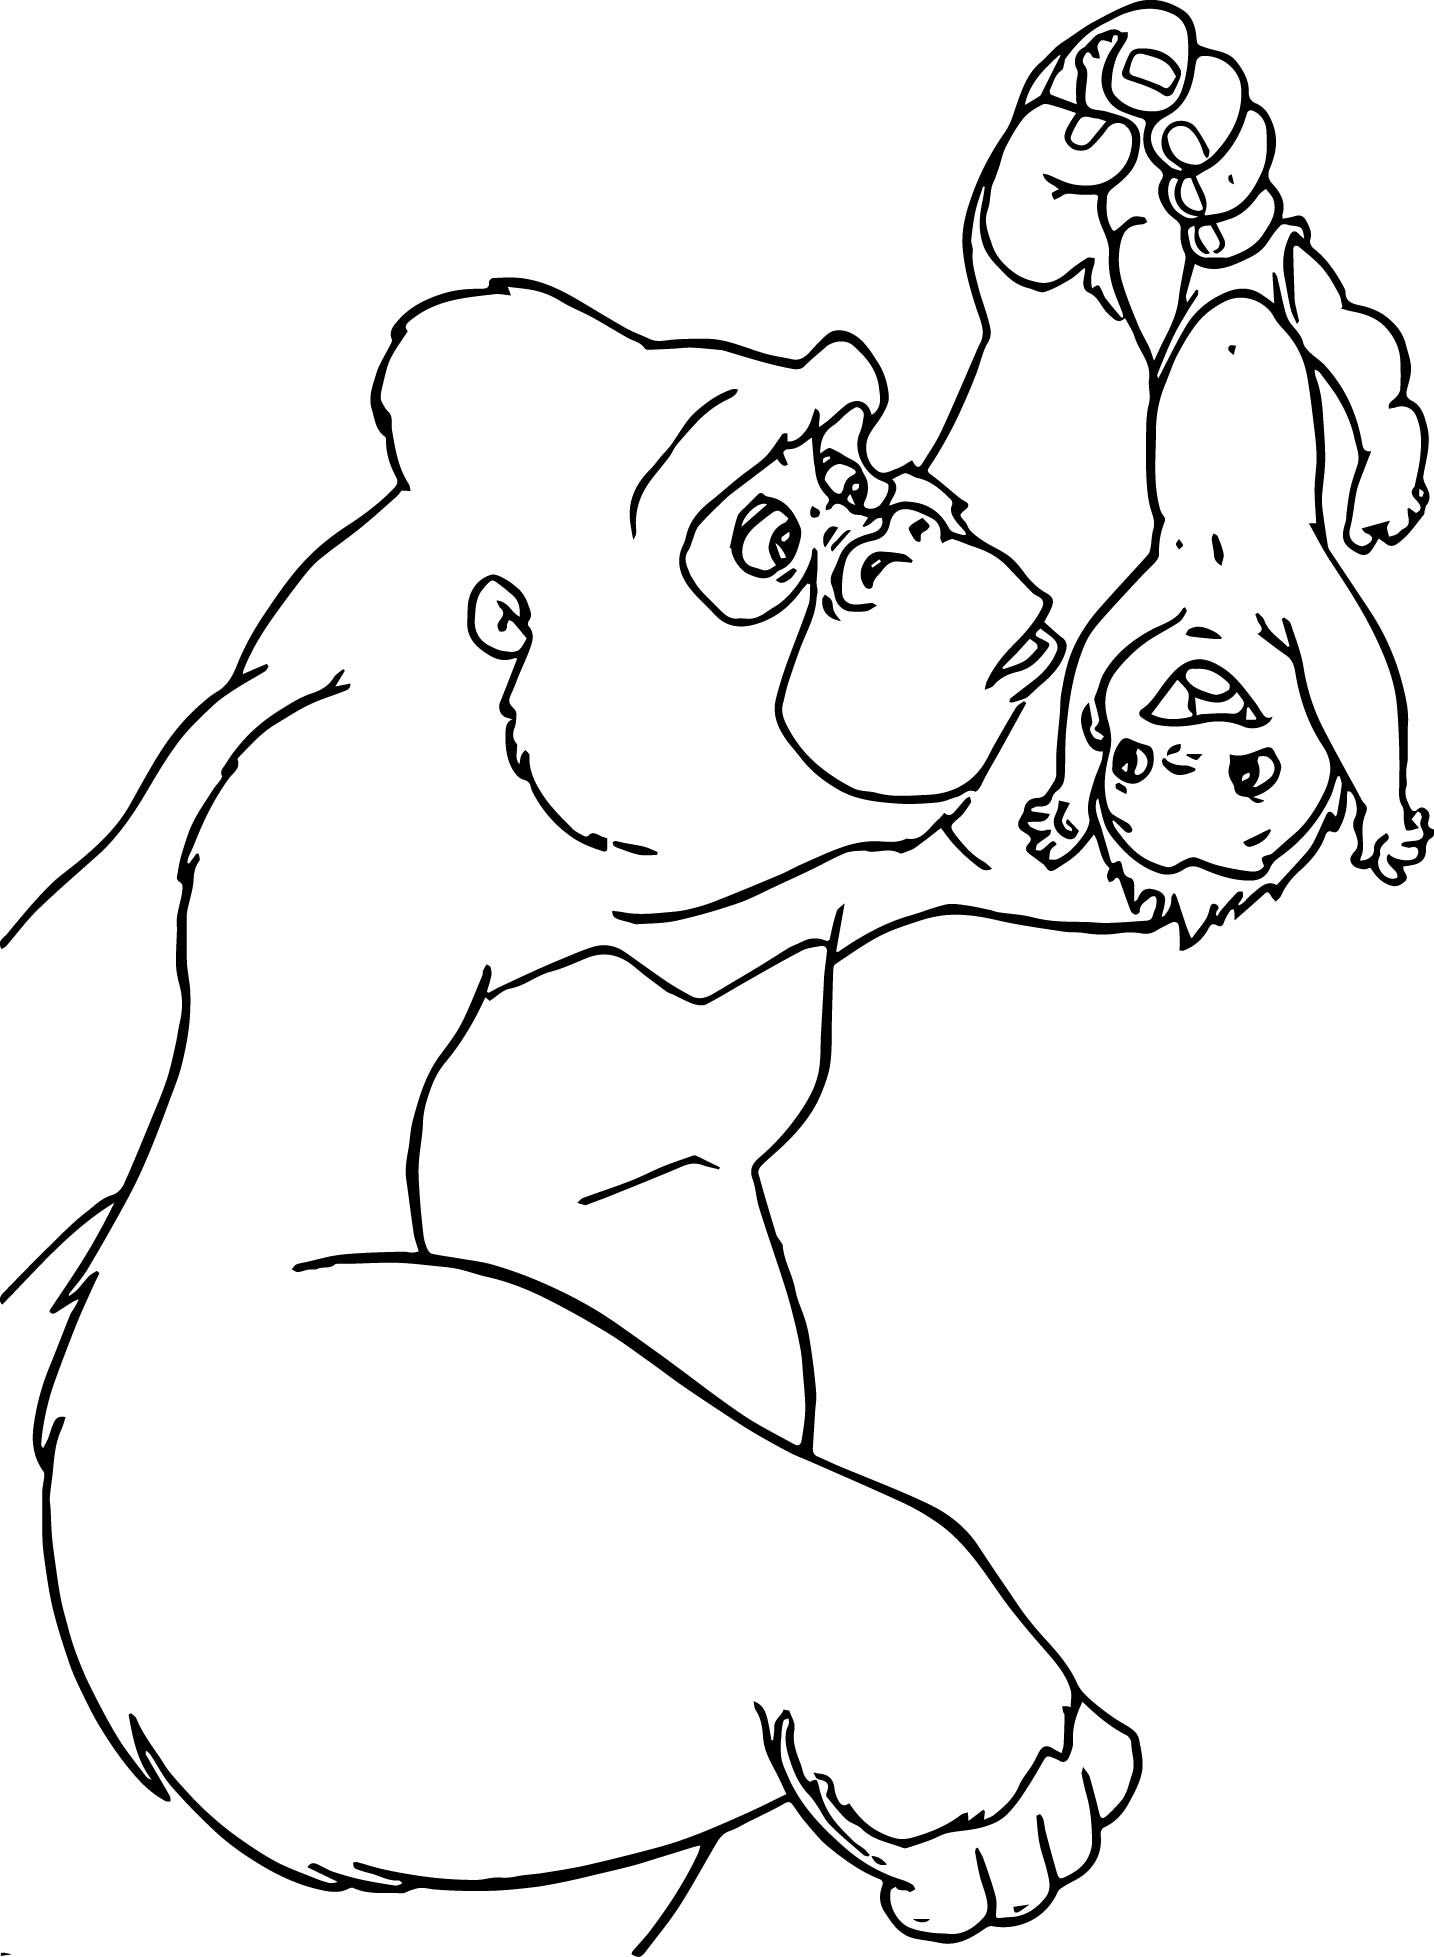 Disney Baby Tarzan Kala Baby Turn Coloring Page How To Turn A Picture Into A Coloring Page